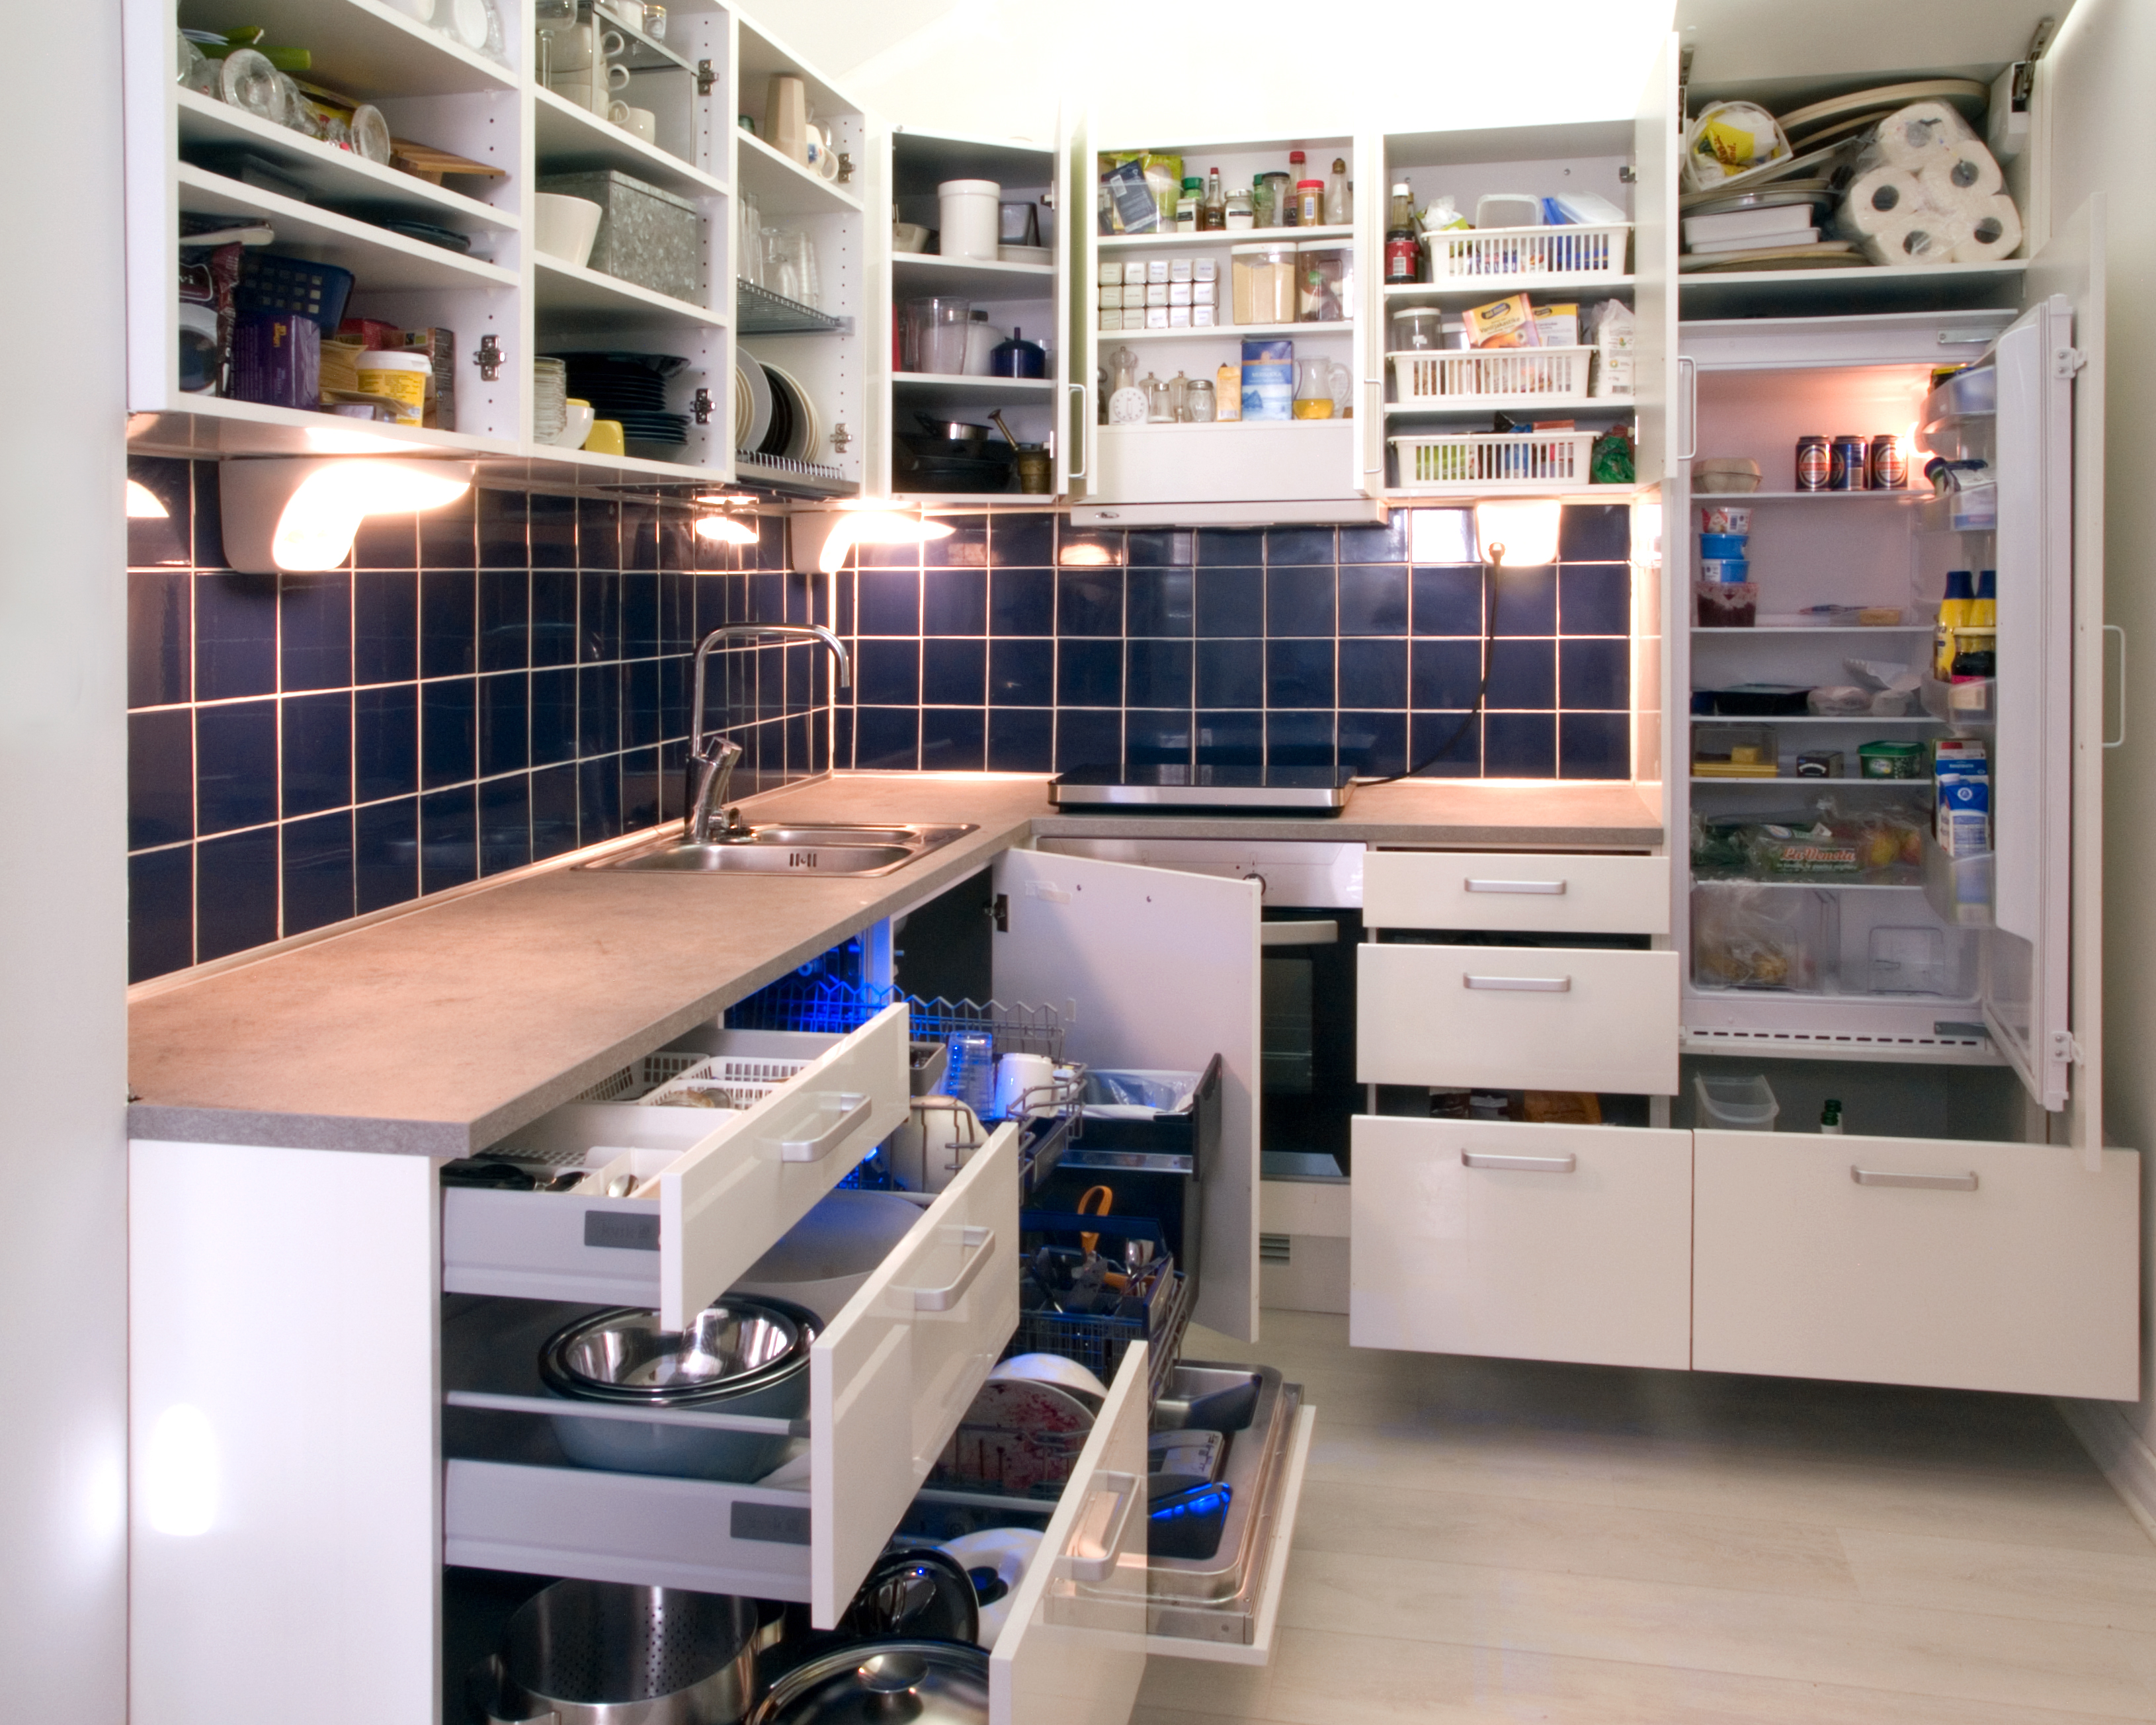 White kitchen with cabinet doors and drawers opened or removed so that real life stuff can be seen in cabinets